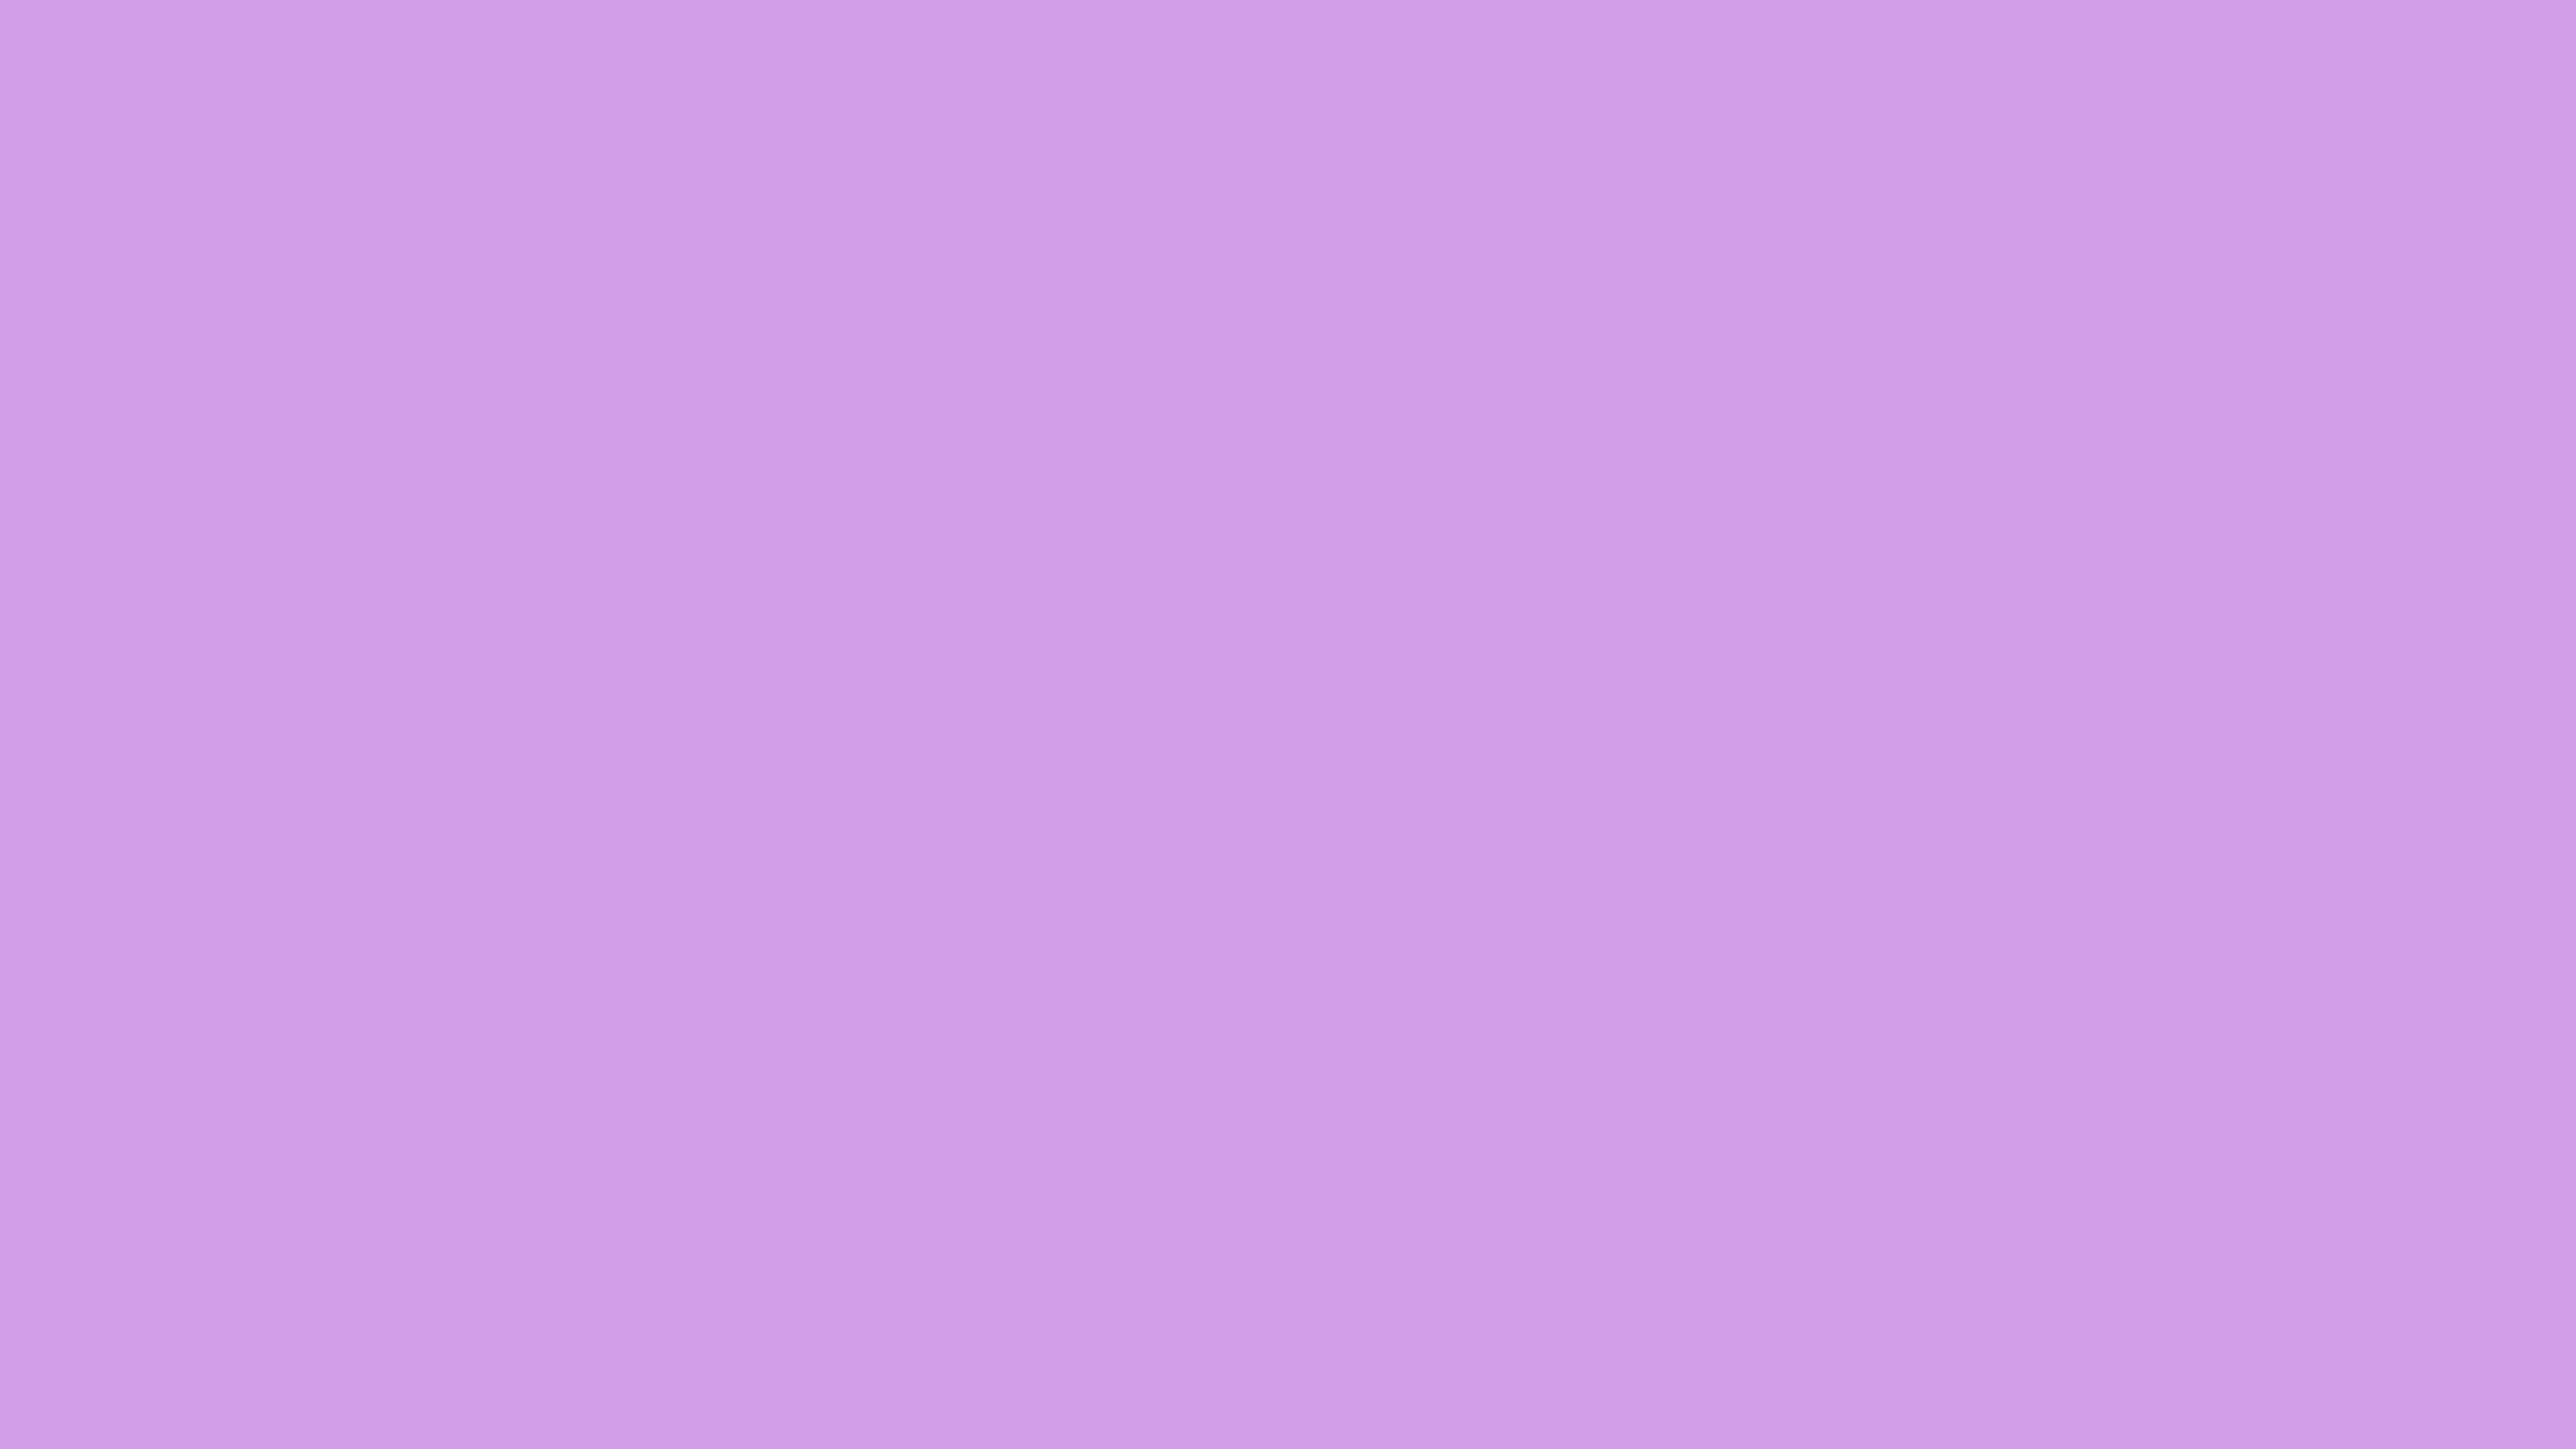 5120x2880 Bright Ube Solid Color Background